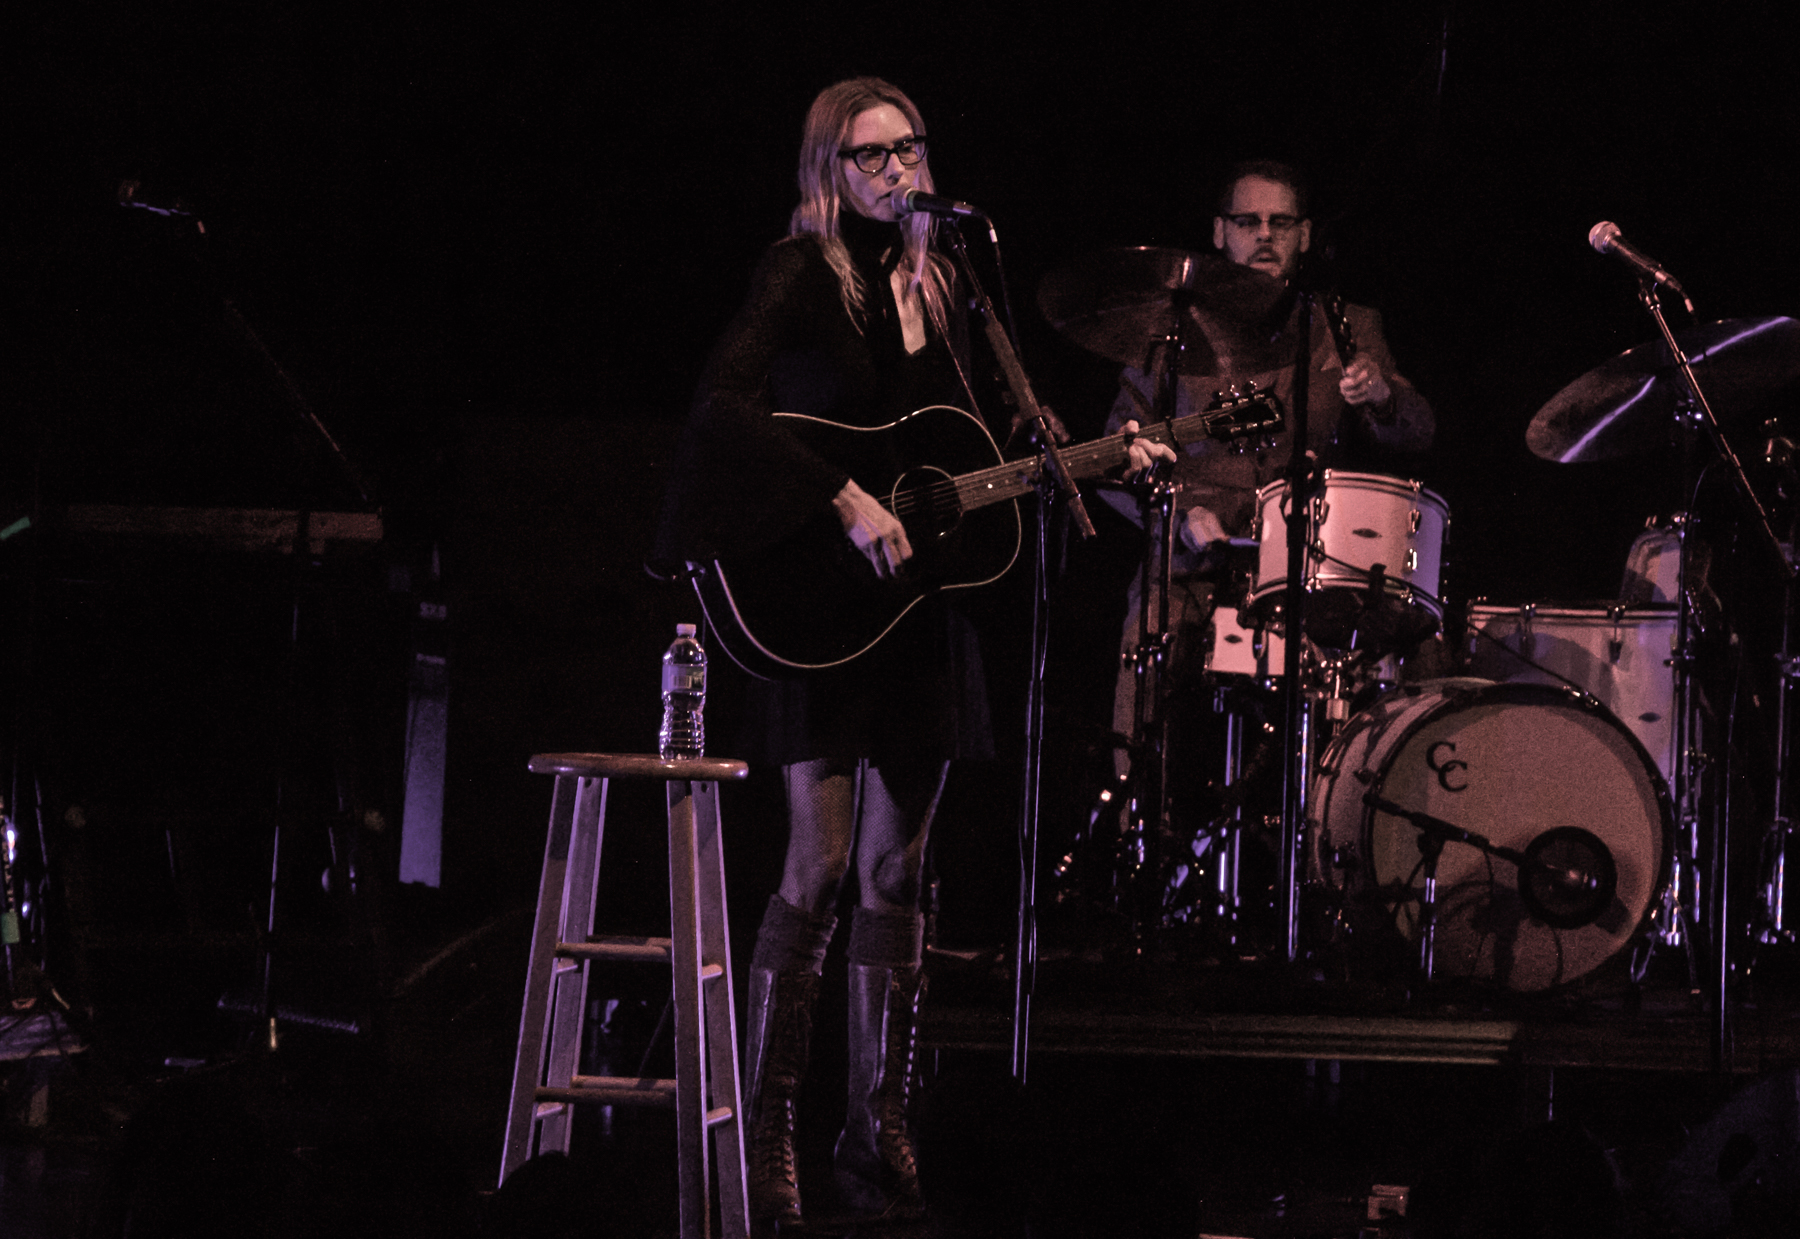 aimee mann 15 lior phillips Live Review: Aimee Mann at Chicago's Park West (4/29)